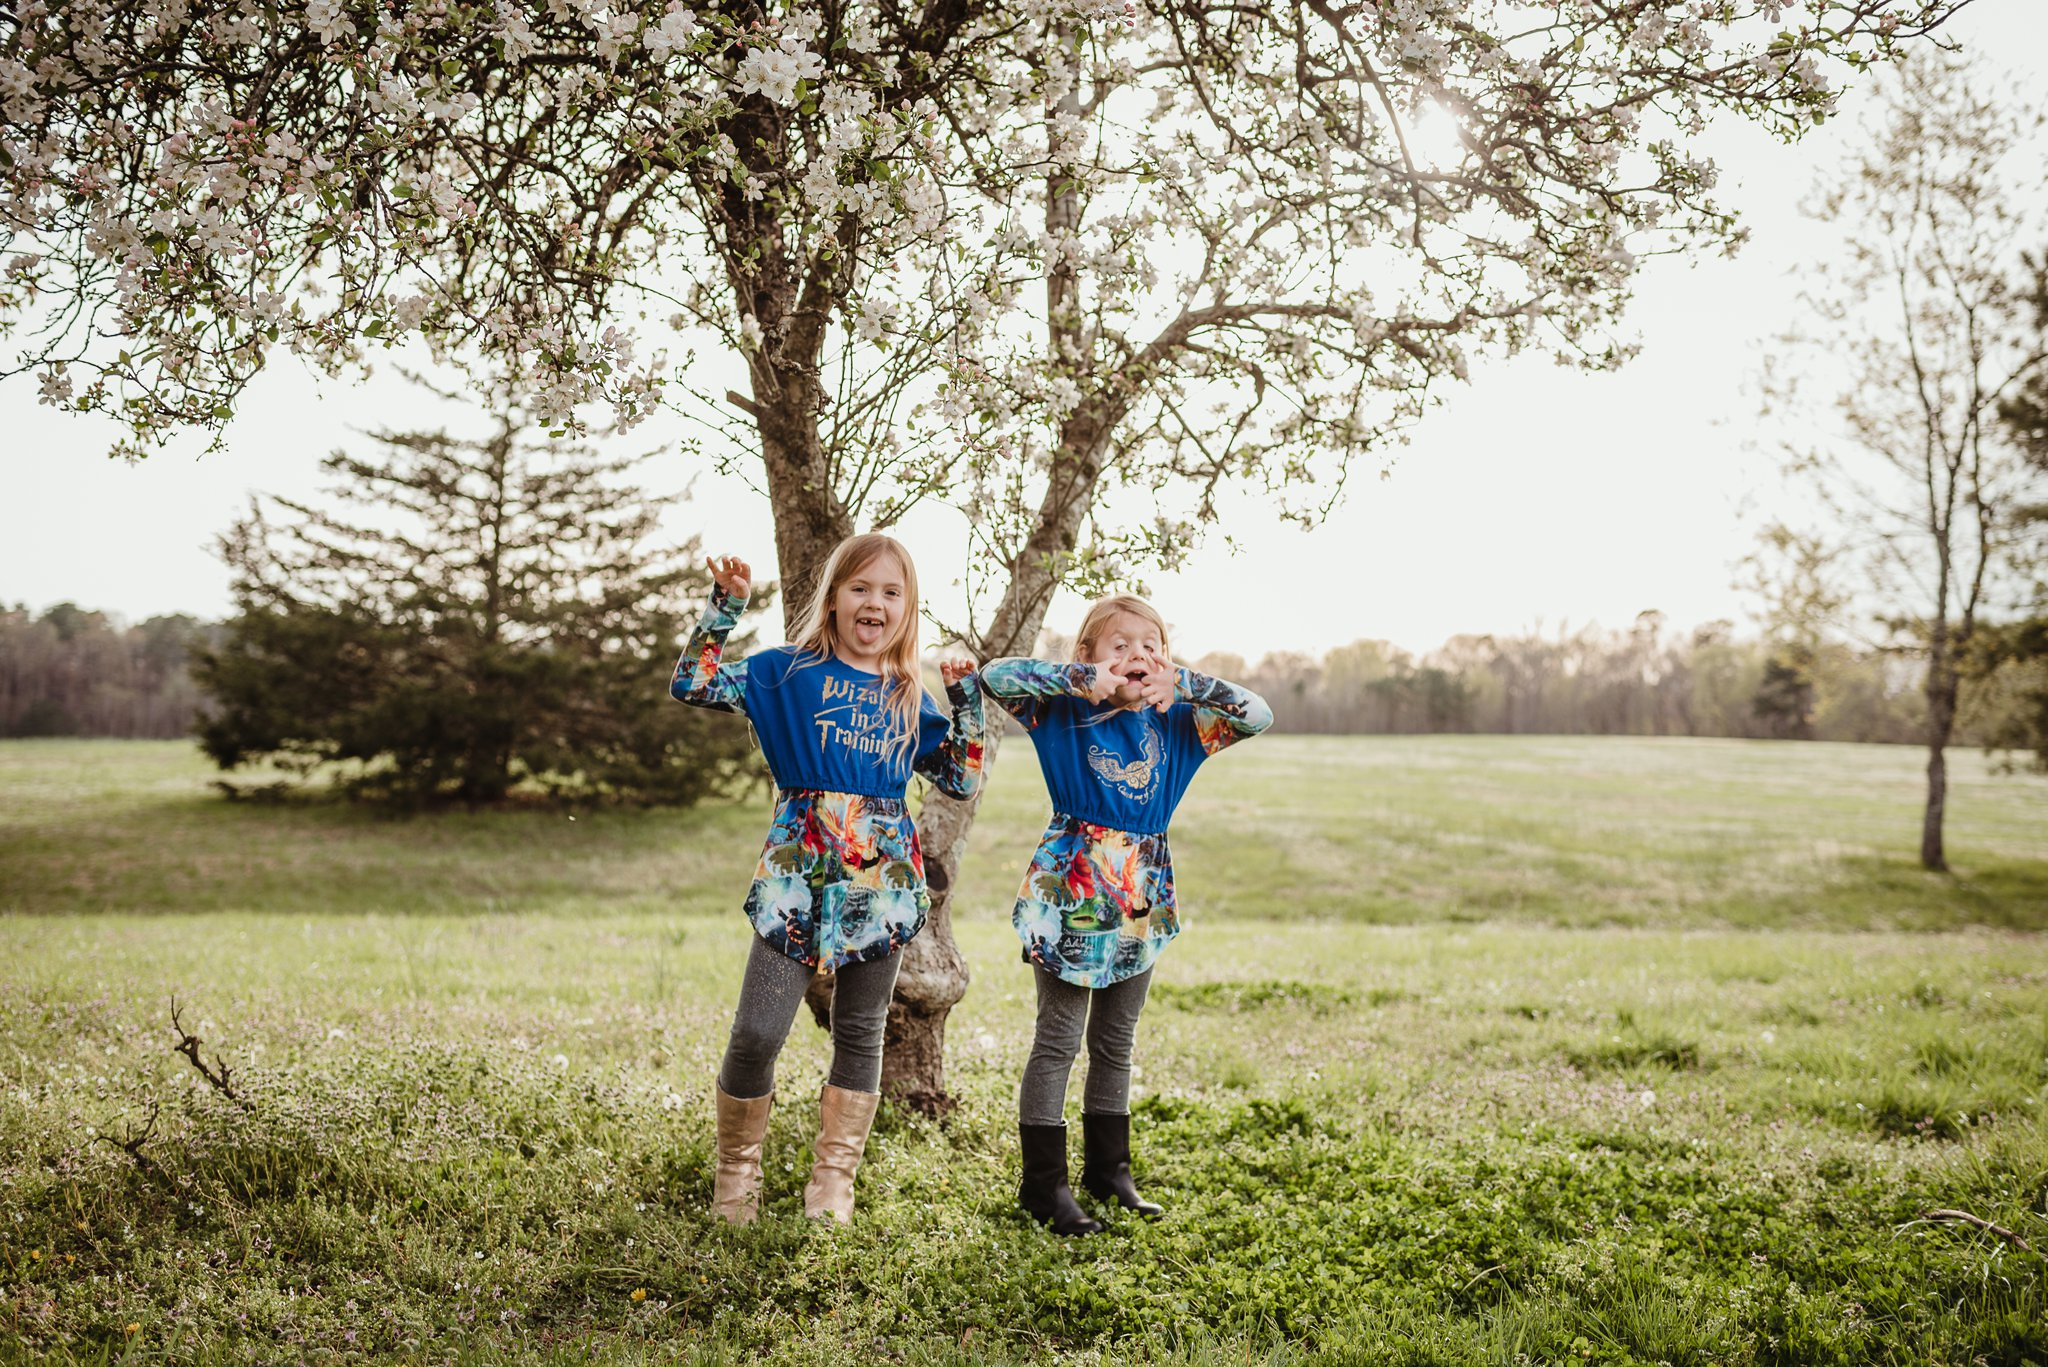 These sisters got silly for the camera with Rose Trail Images during their family photo session in Wake Forest, North Carolina.